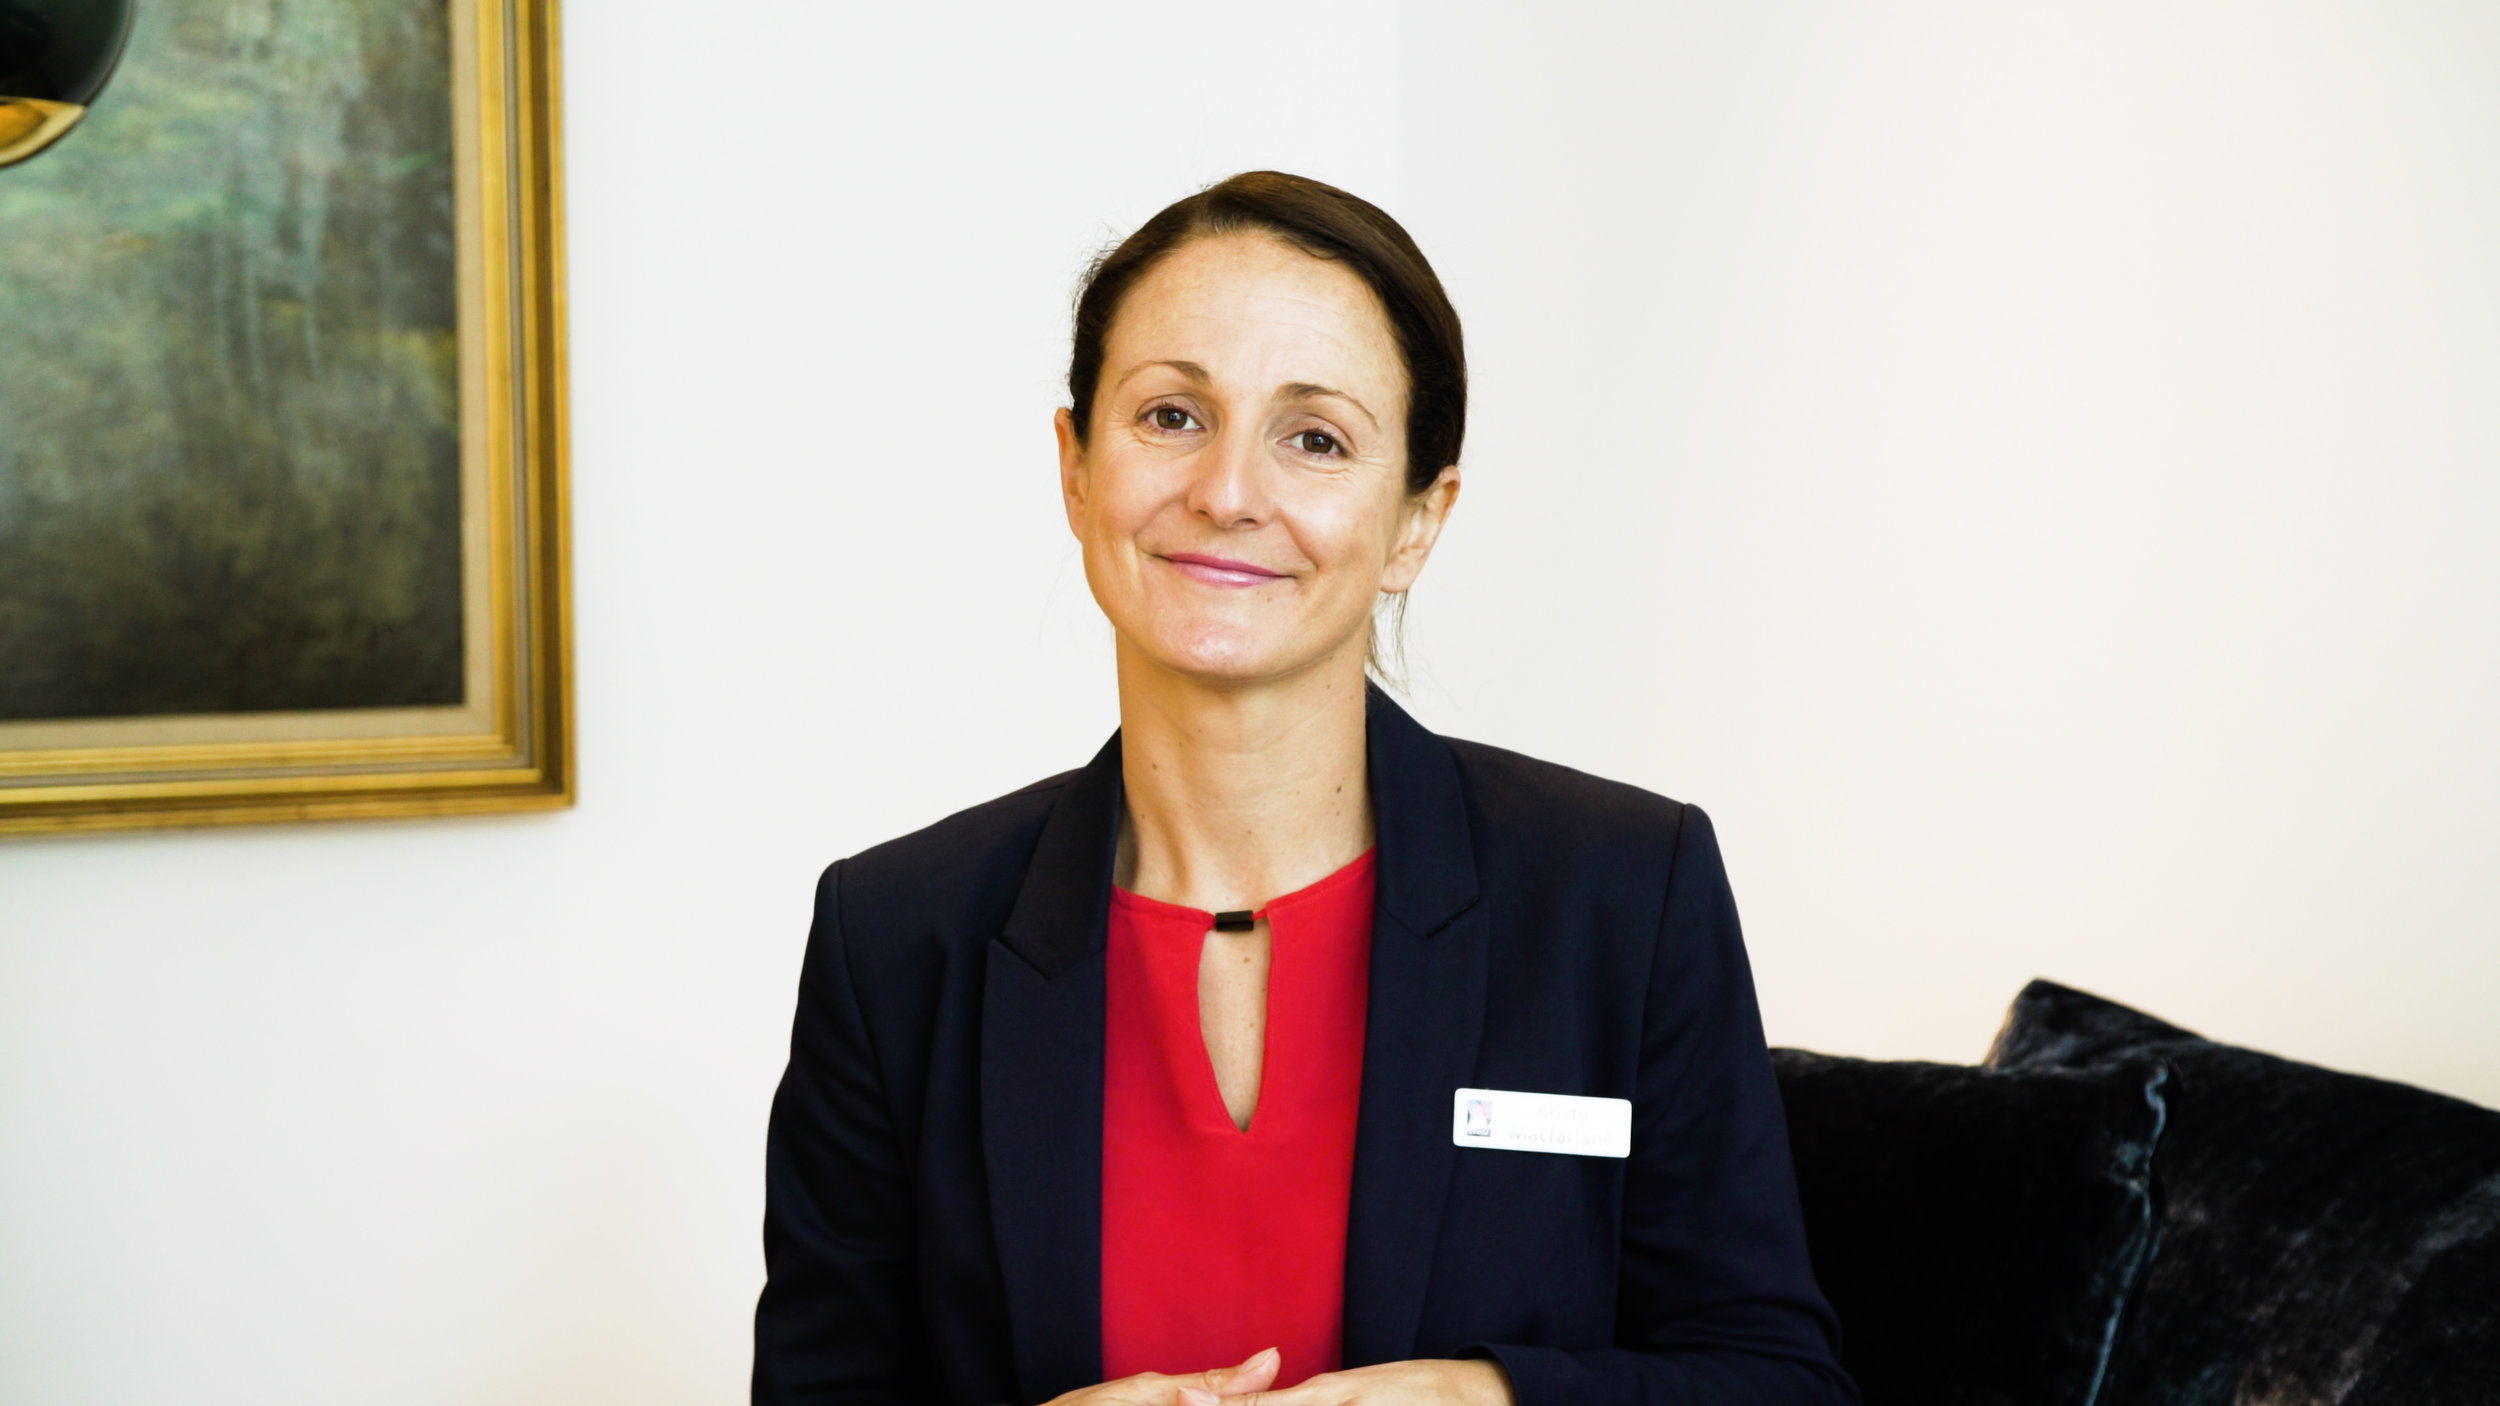 Kirsty Macfarlane, Head of Diversity & Inclusion at National Australia Bank